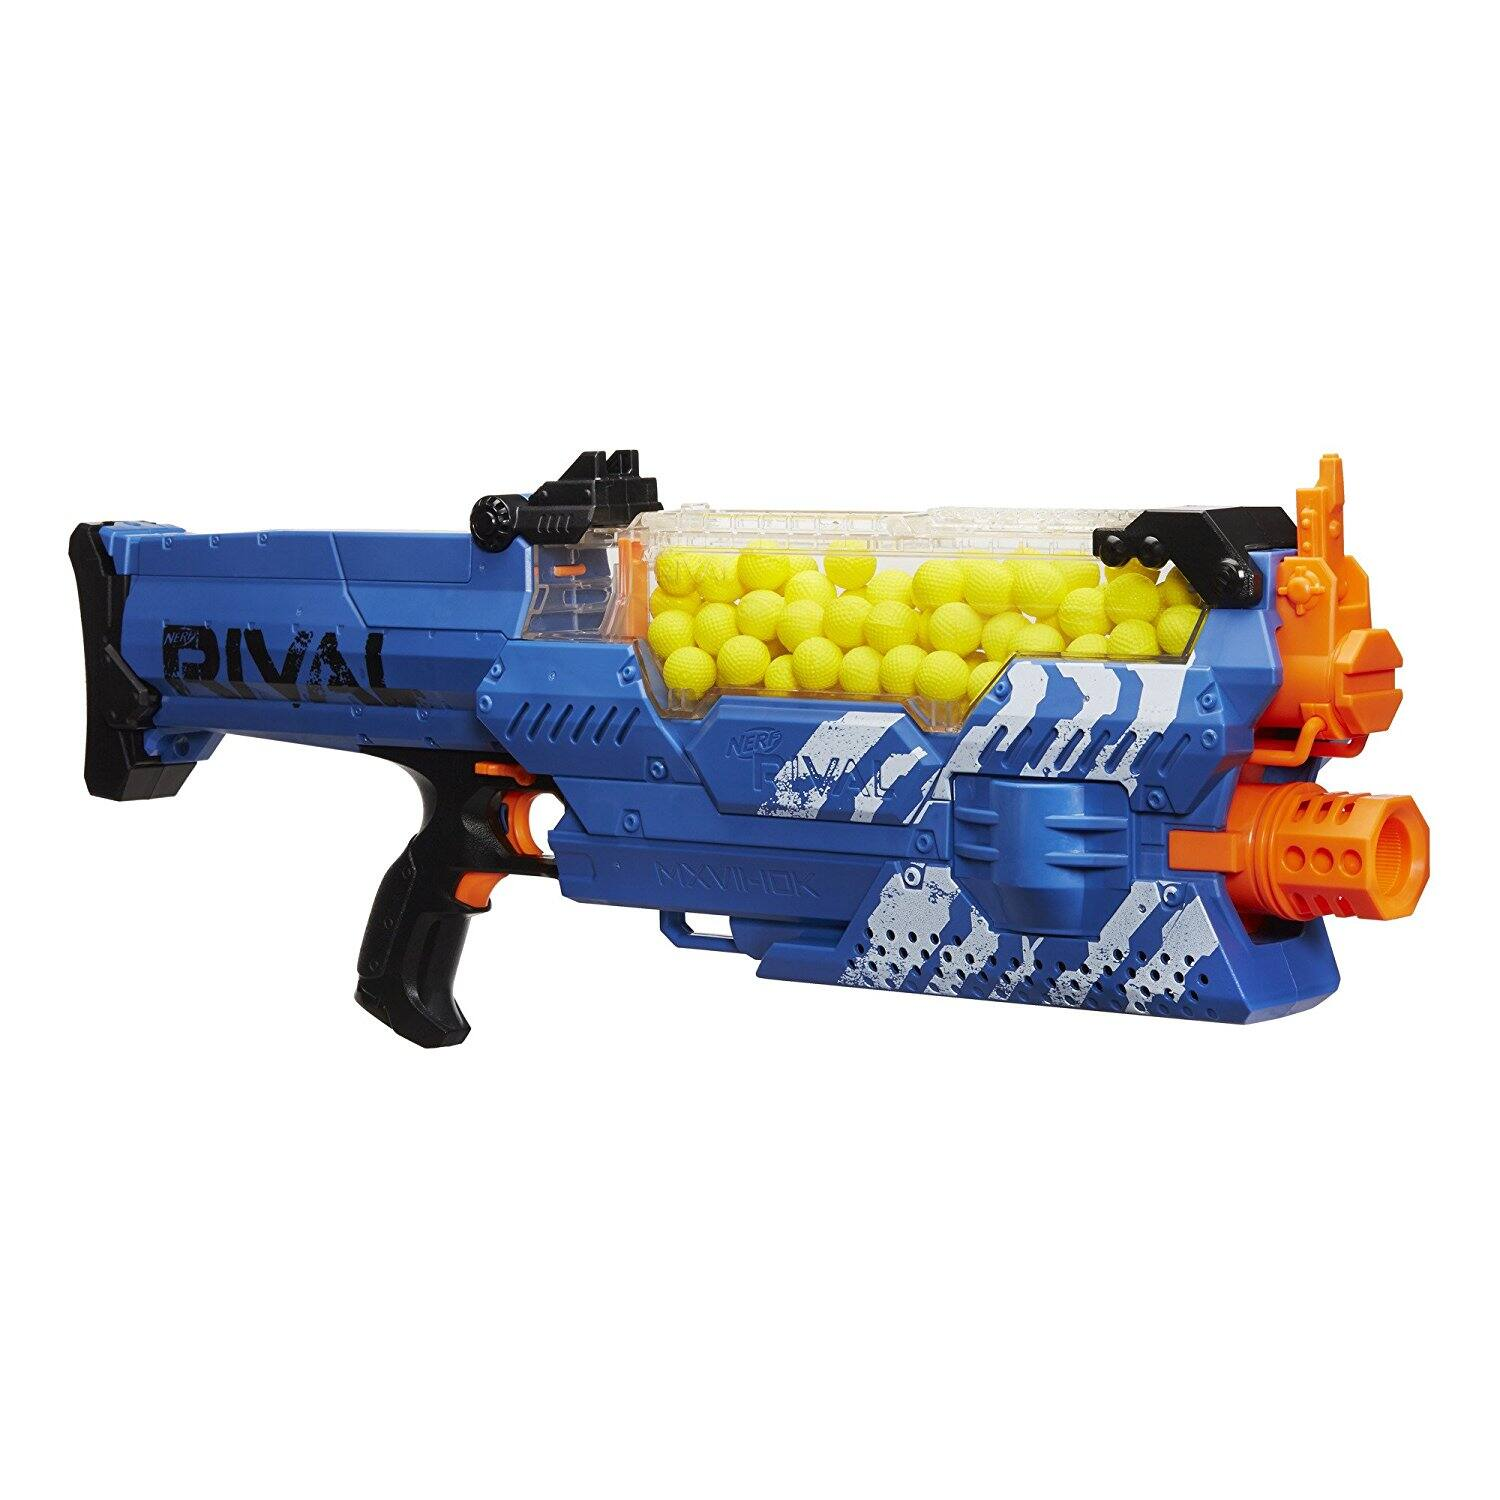 Nerf Rival Nemesis - Amazon $68.99